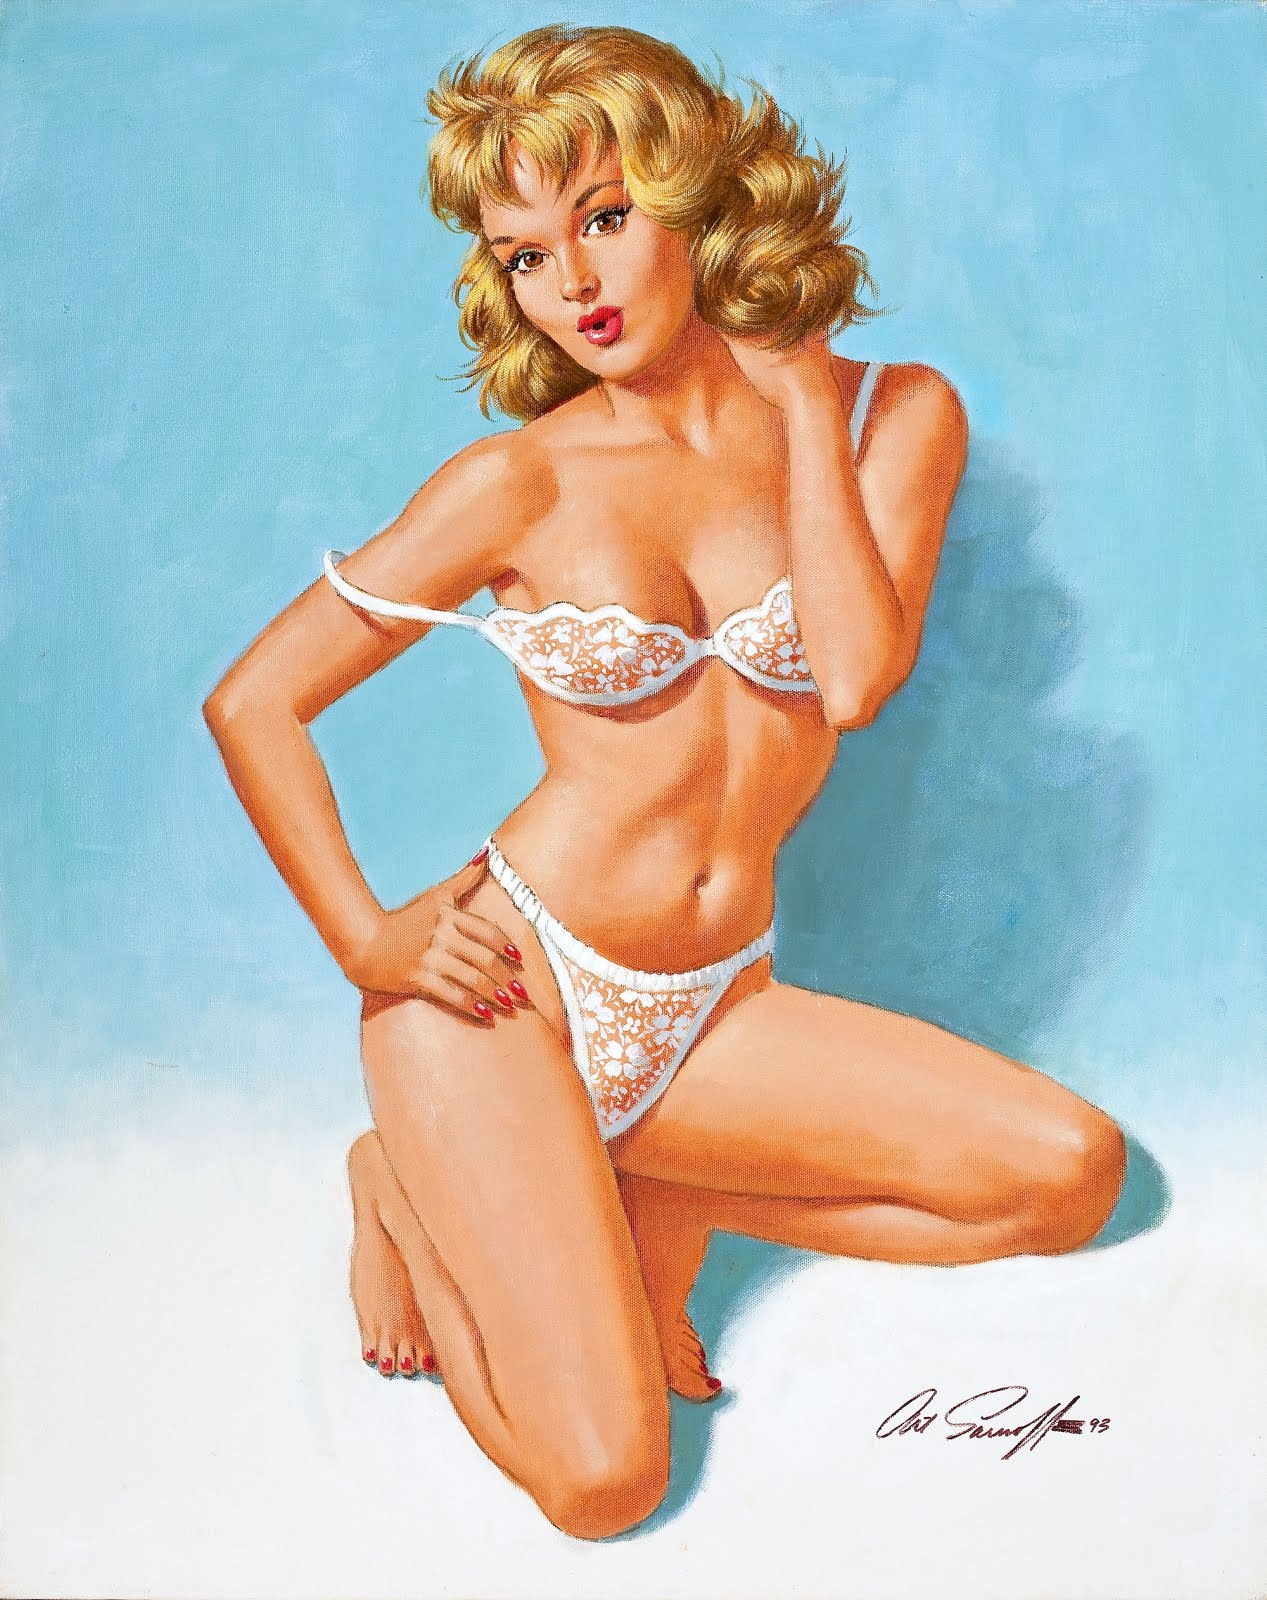 Pin By Jonika Tarot On Totally Tarot Group Board: Classic Pinups: Arthur Sarnoff Pinups